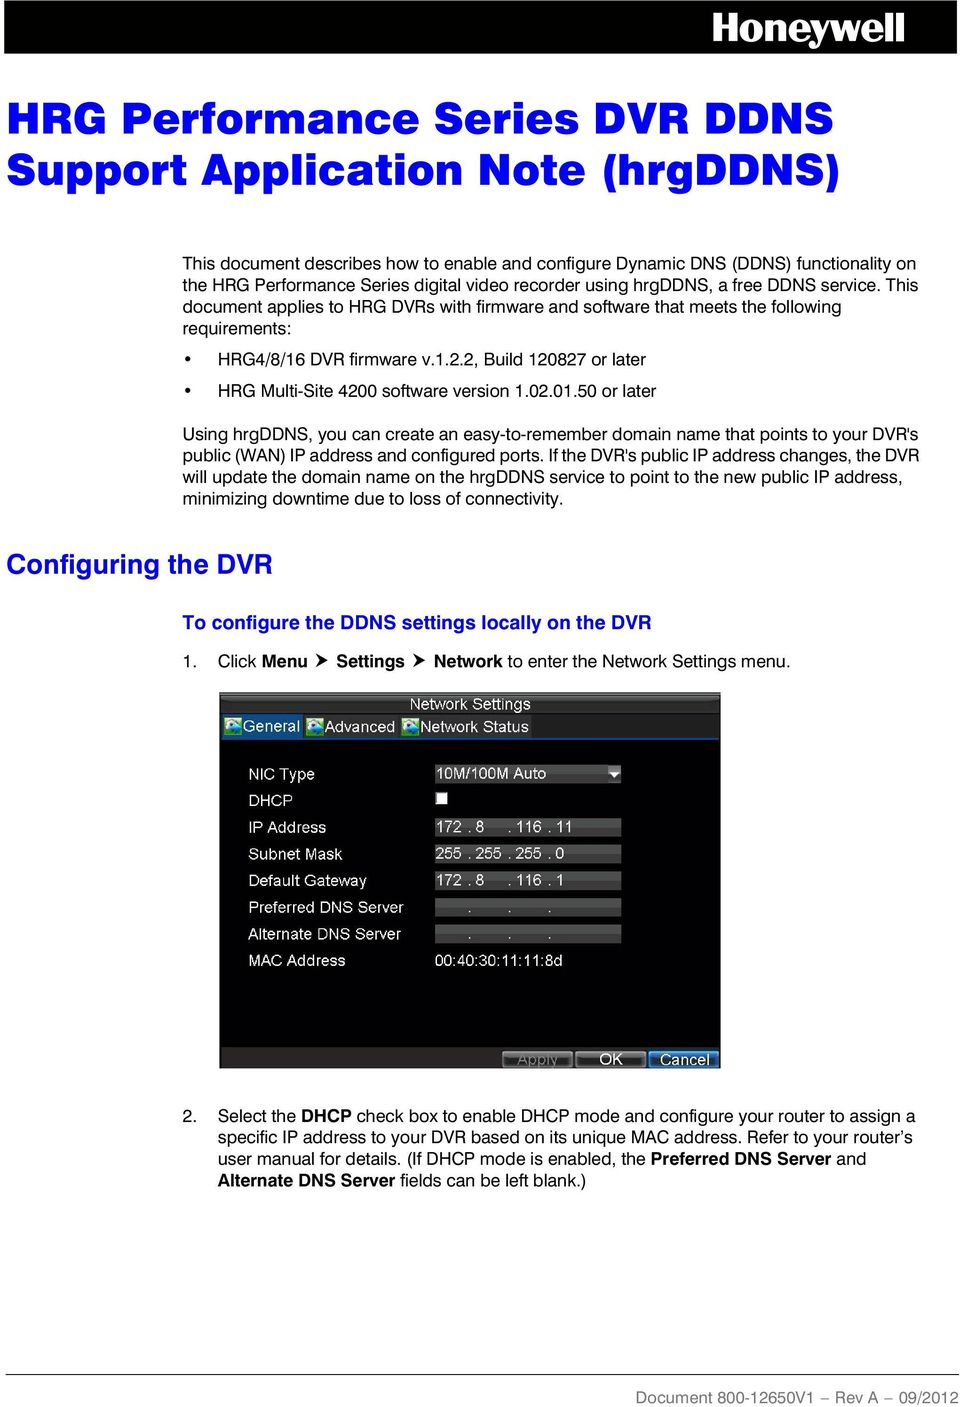 HRG Performance Series DVR DDNS Support Application Note (hrgddns) - PDF